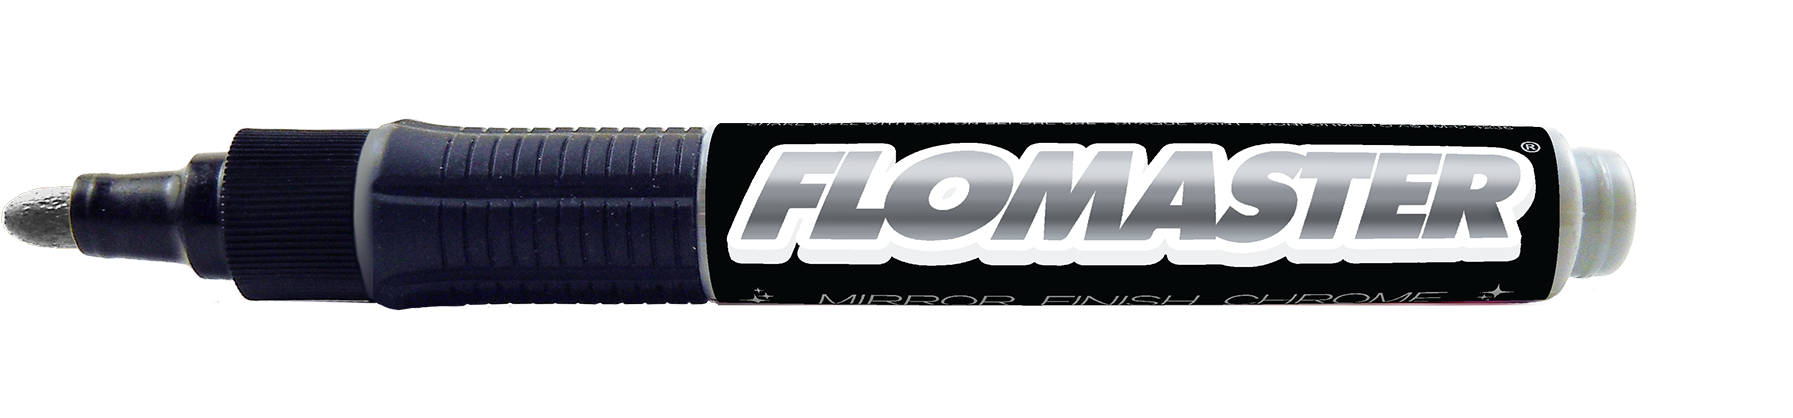 Flomaster Mirror Finish Metallics